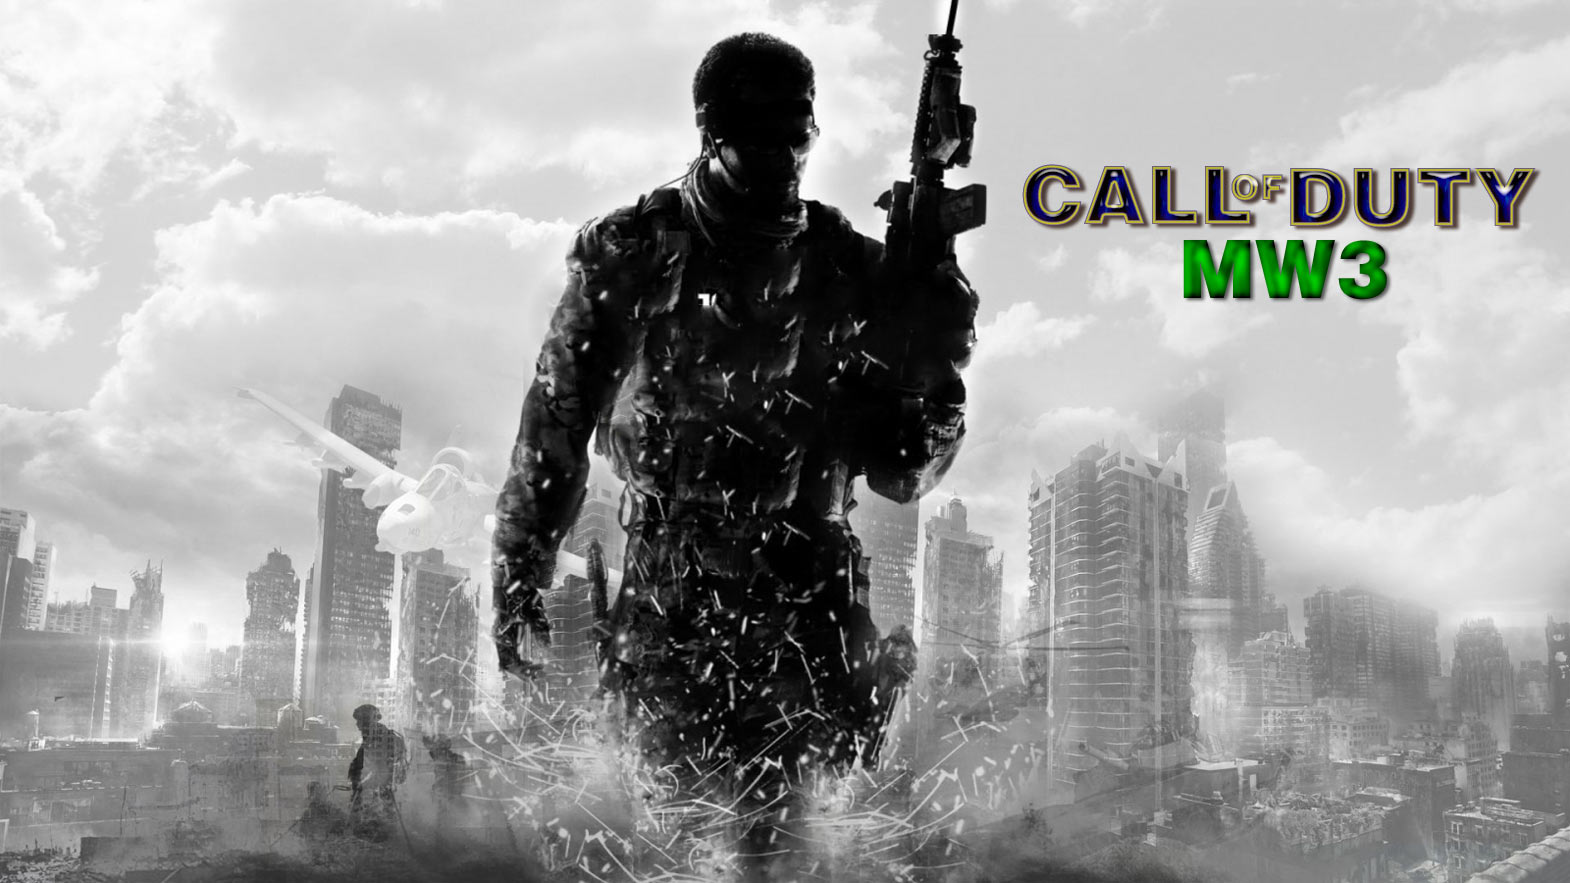 Free Download Wallpaper Juego Call Of Duty Mw3 1570x883 For Your